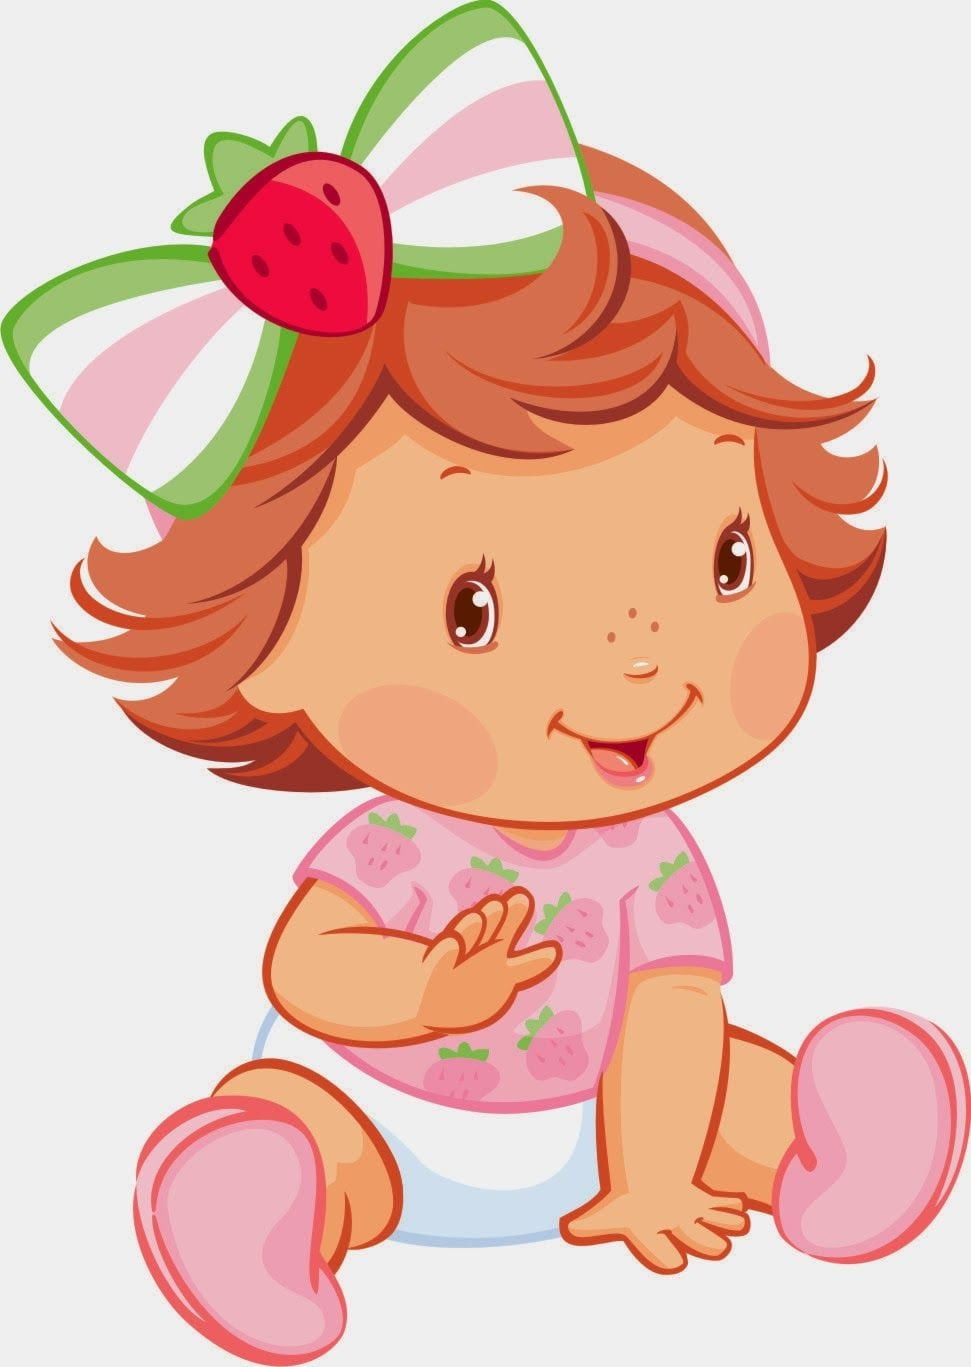 Baby_strawberry_shortcake_image_15 Png